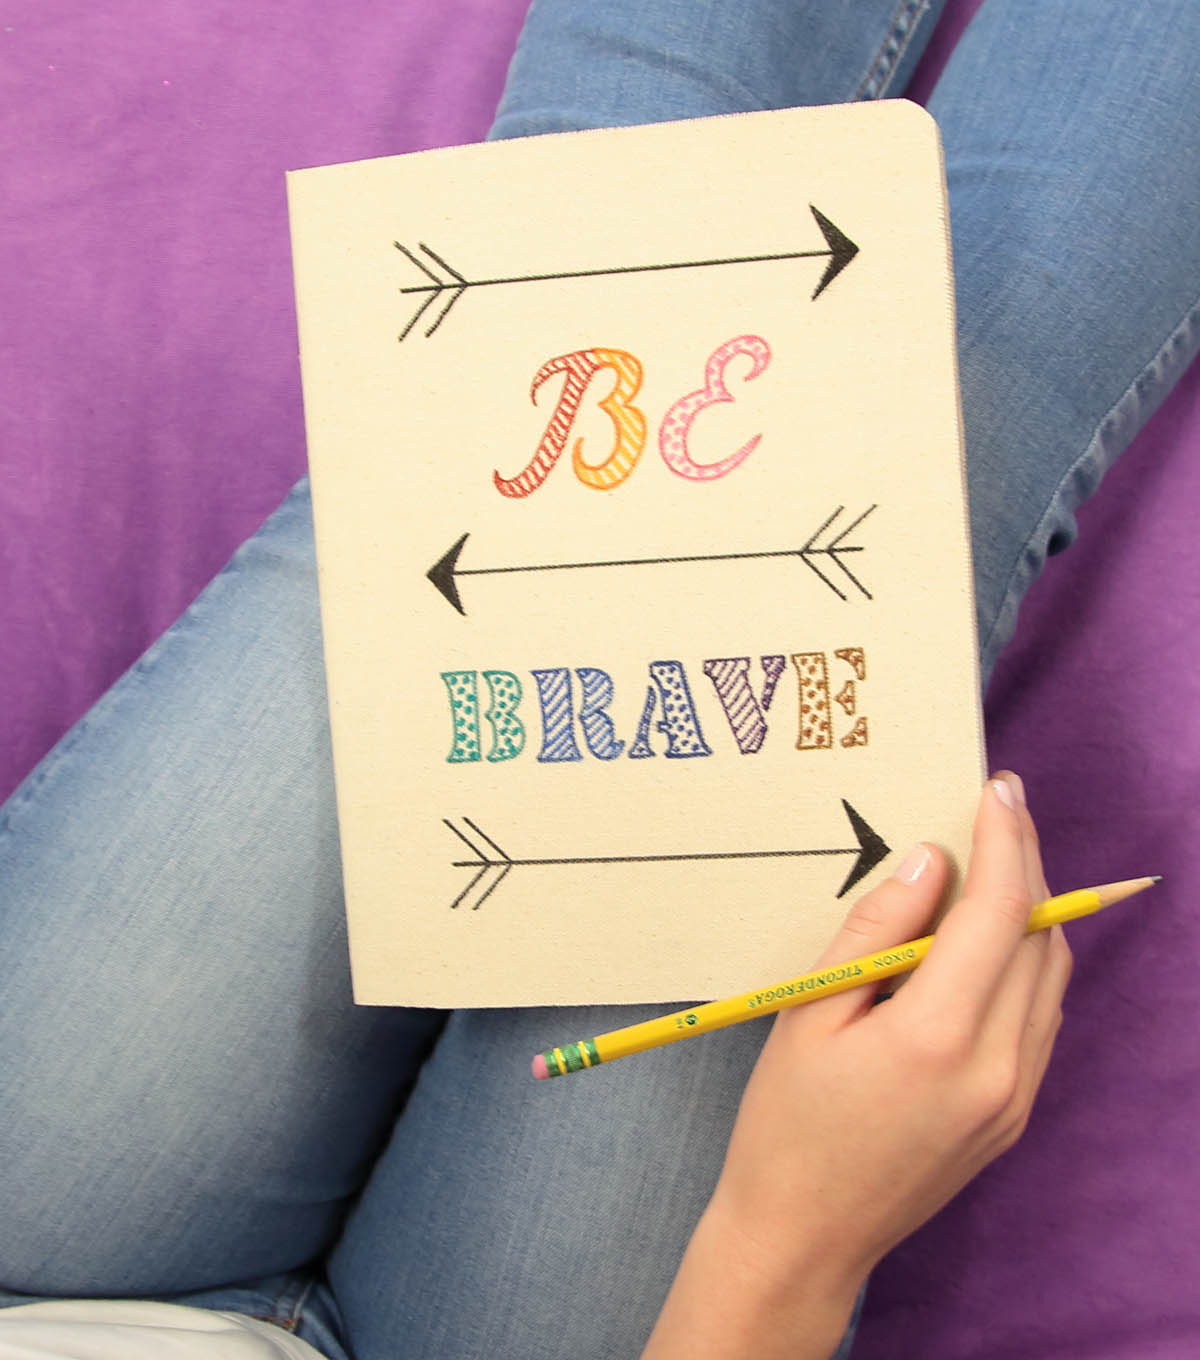 How To Make A \u0022BE BRAVE\u0022 Canvas Journal